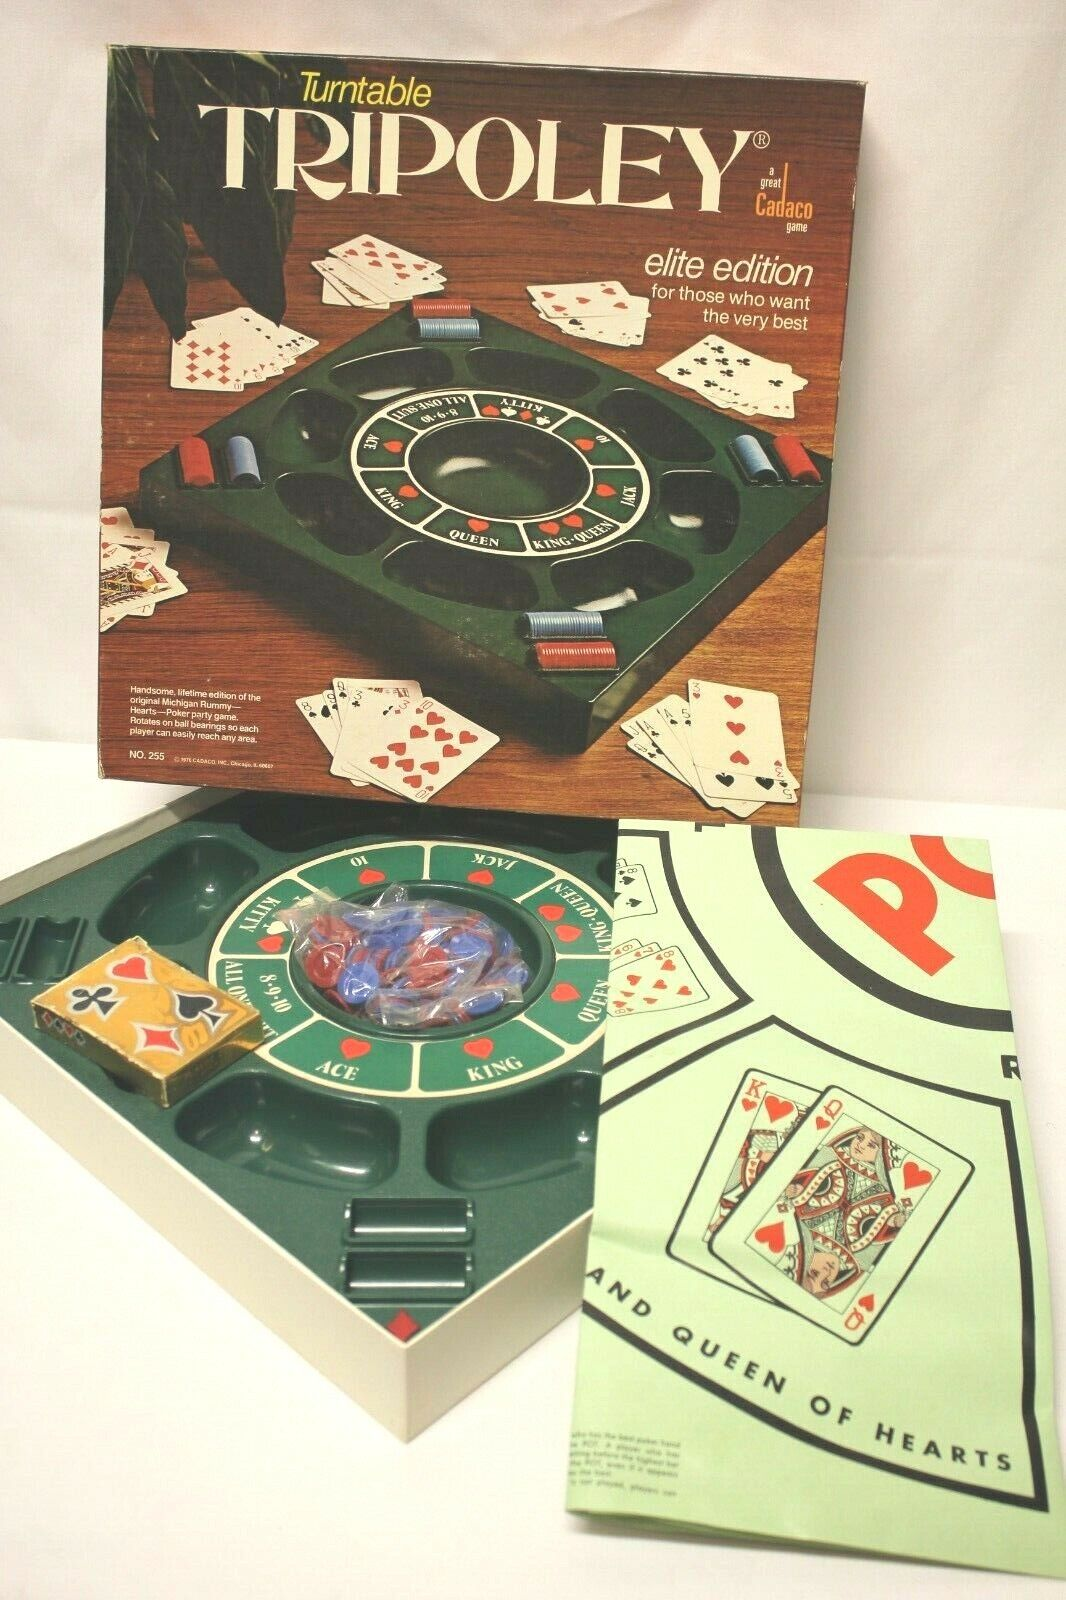 Vtg Deluxe Turntable TRIPOLEY Elite Edition Game 1976 Cadaco No.255 + Rummy Mat